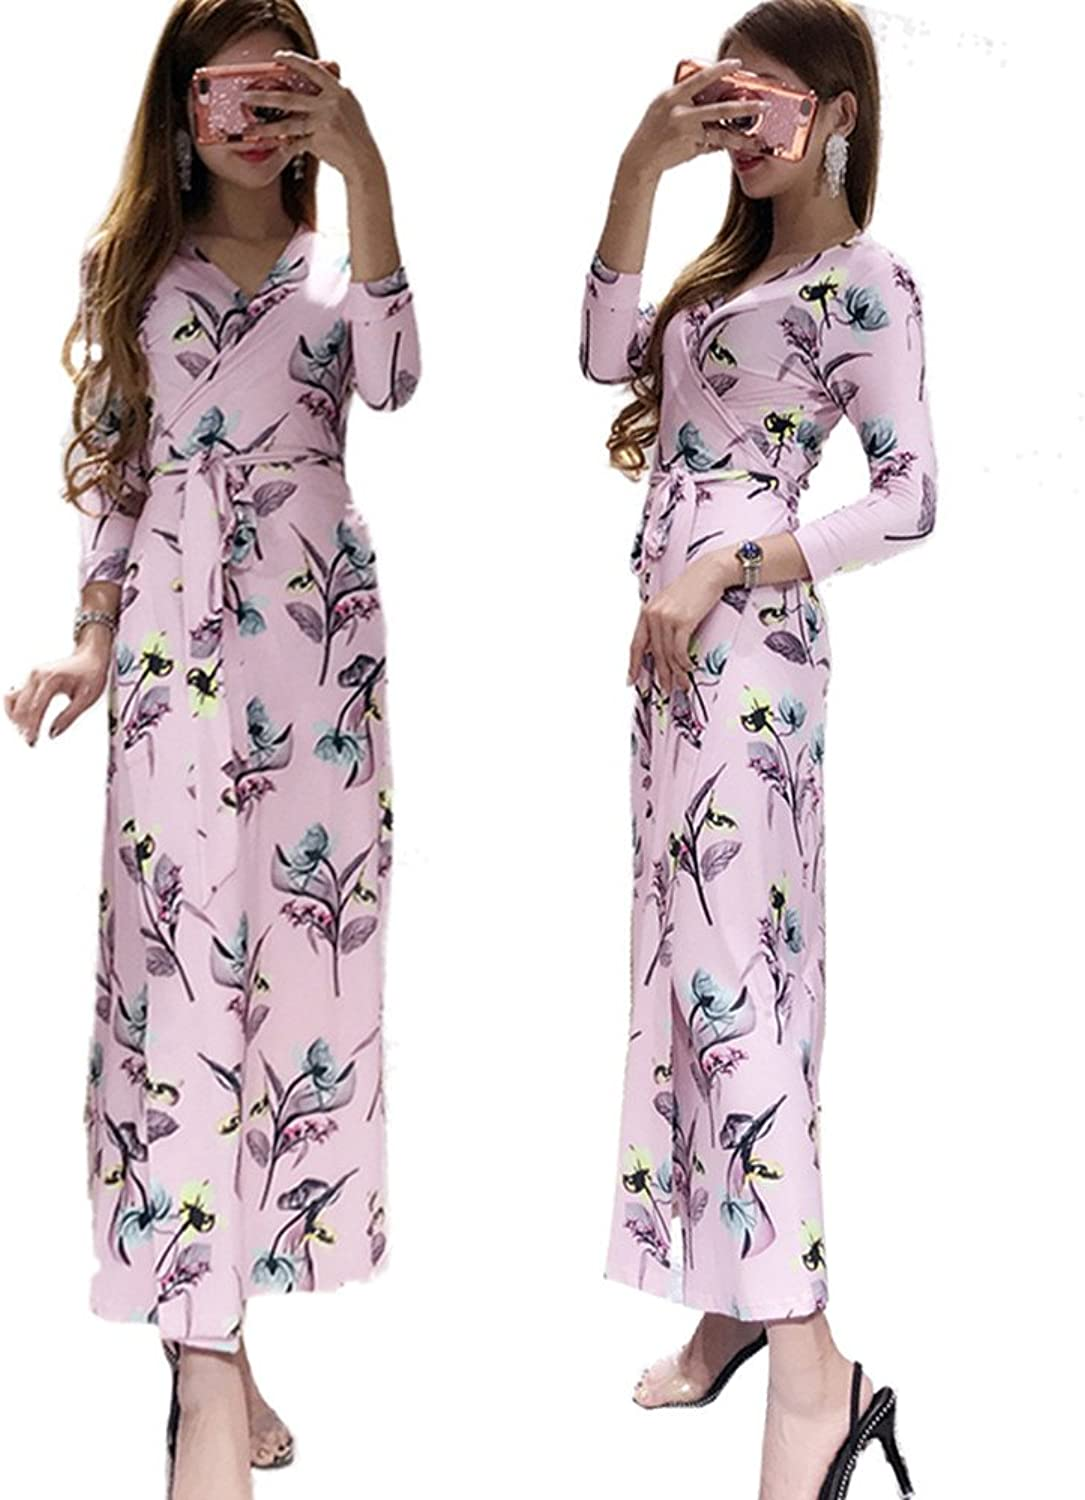 XC DVF Women Summer Vintage Floral Print Wrap Dress dvf Long Maxi Beach Dress with Belt